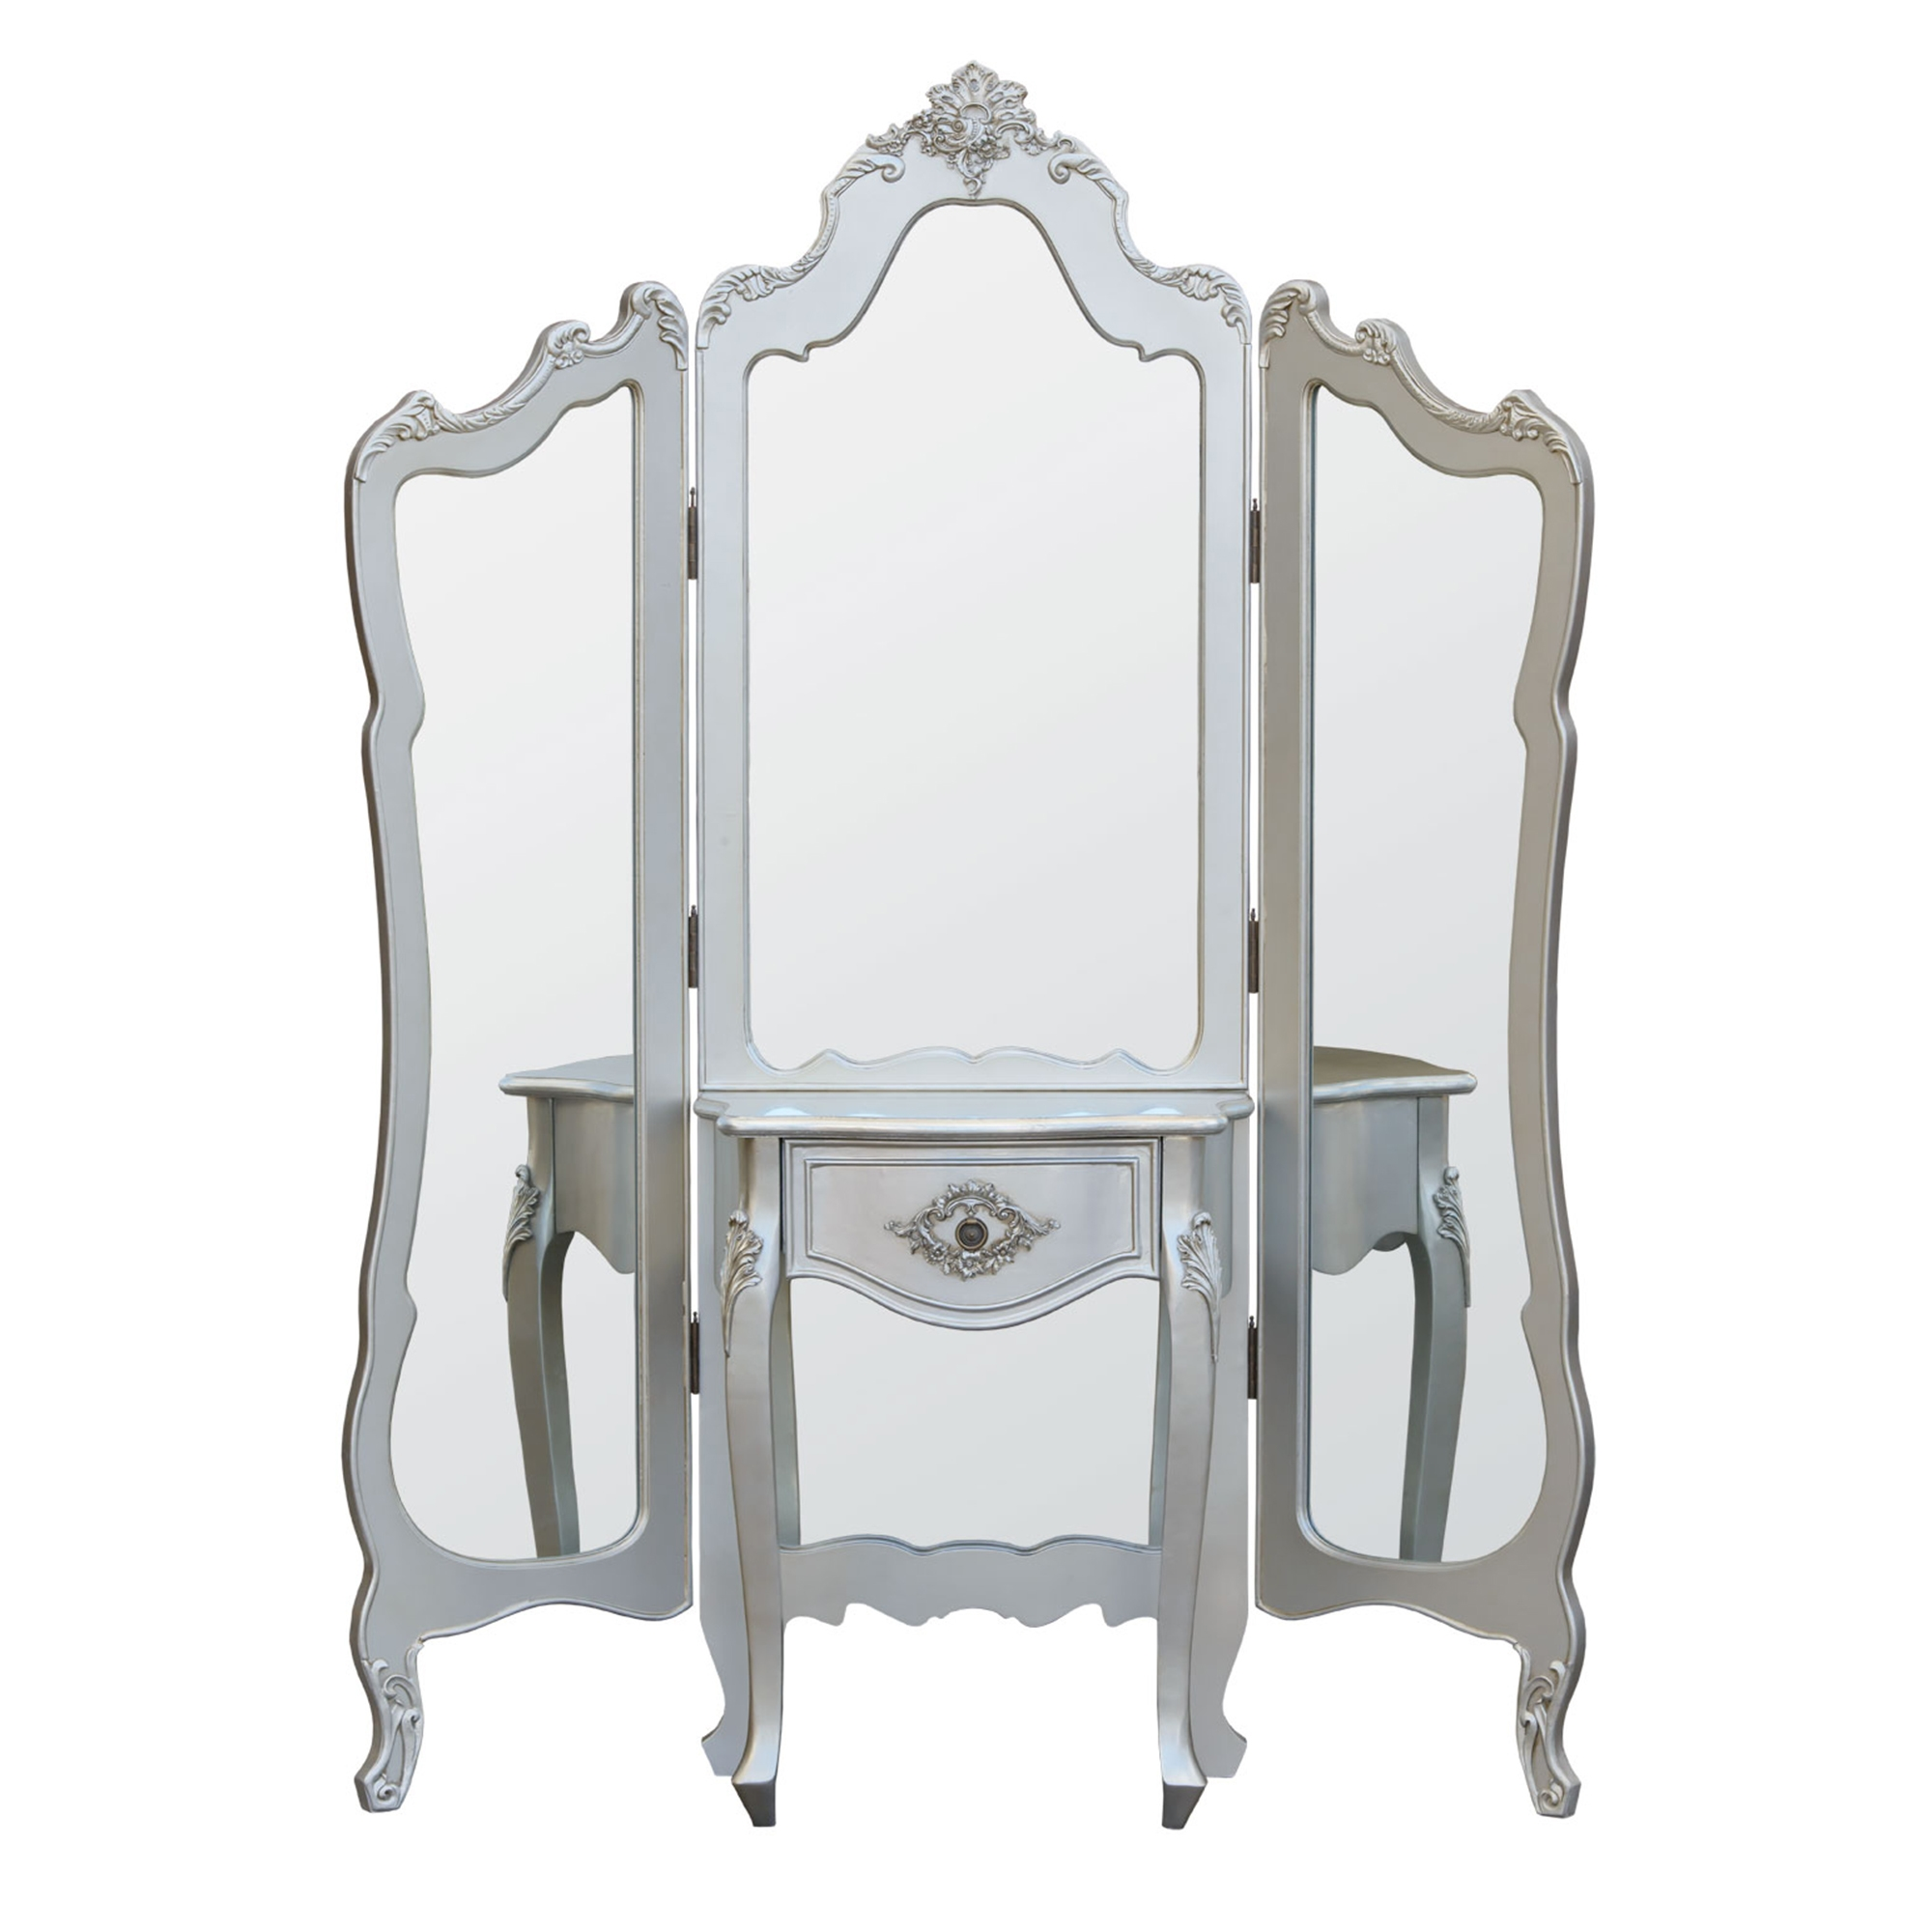 Boudoir Provence Mirrored Triple Screen - Silver